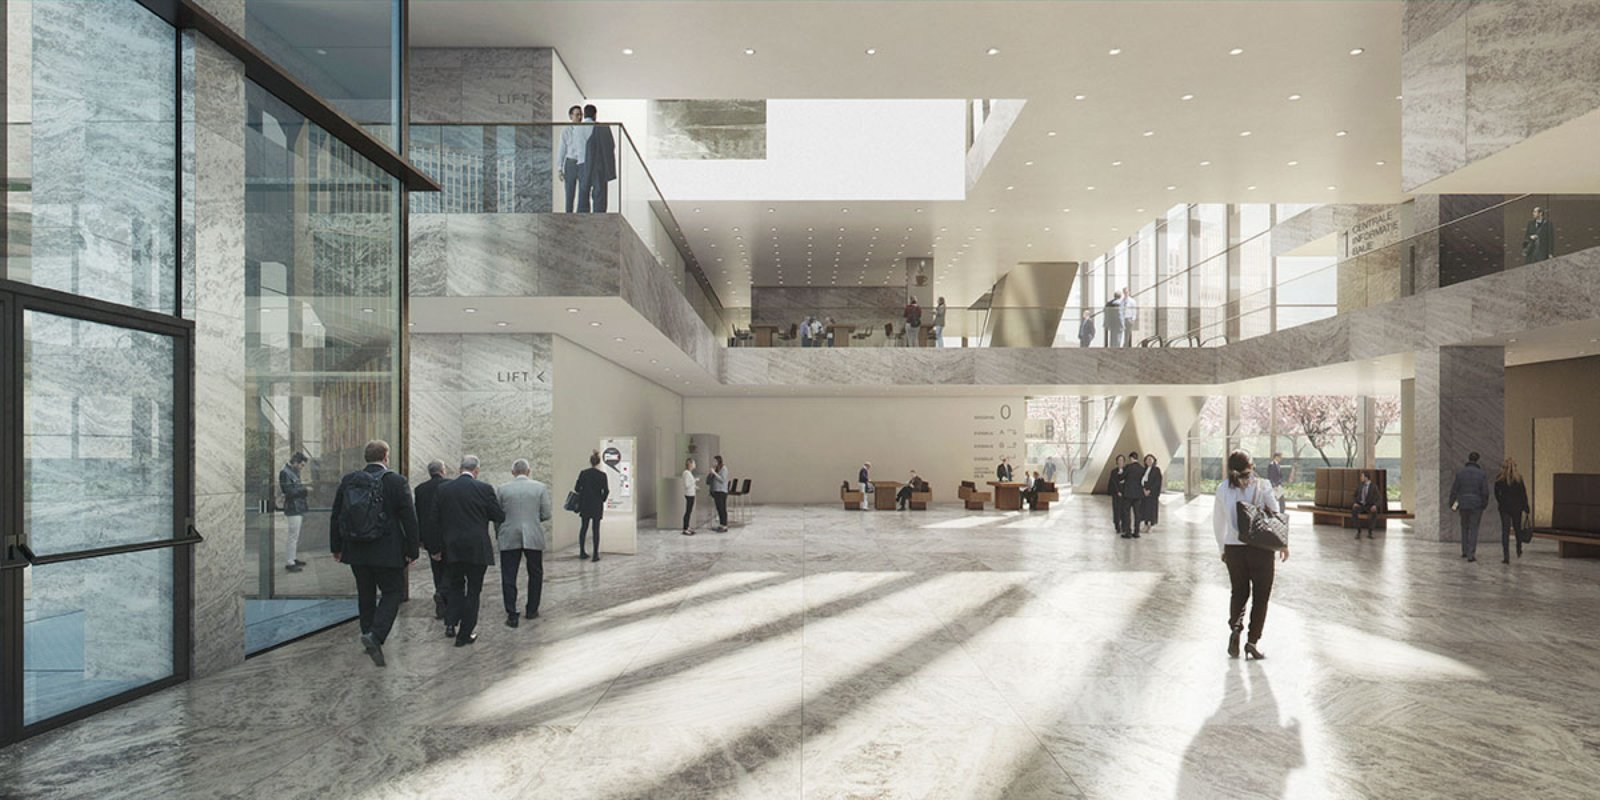 New amsterdam courthouse by kaan architecten 05 for Interieur architect amsterdam